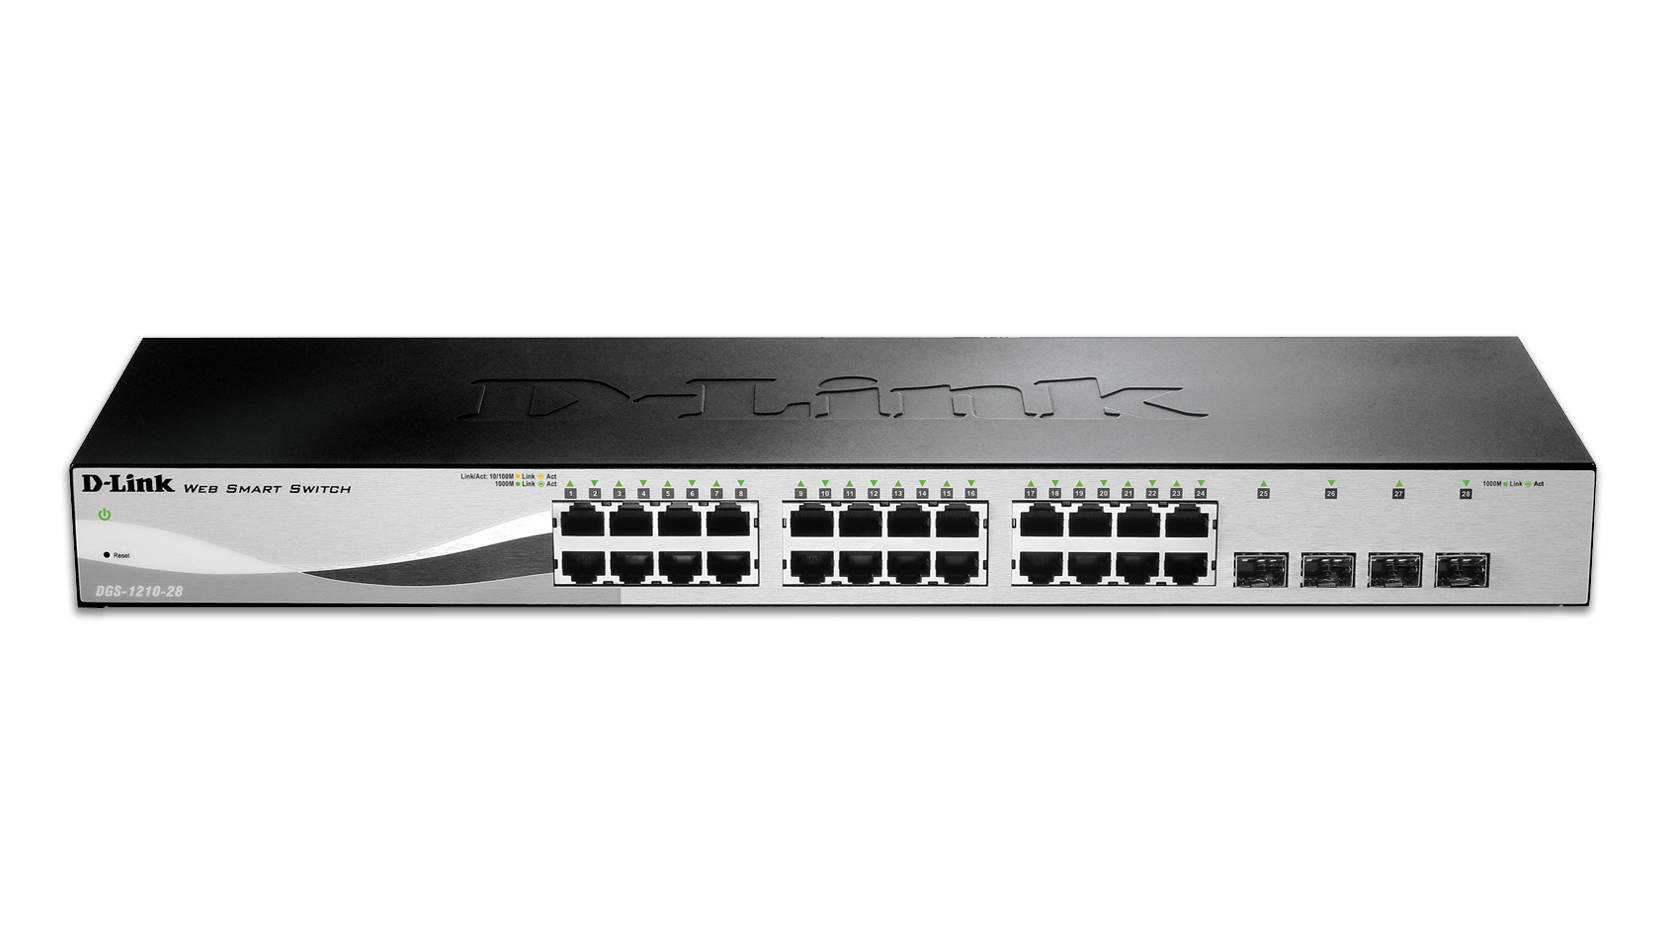 28 port gigabit web smart switch including 4 gigabit sfp ports. Black Bedroom Furniture Sets. Home Design Ideas